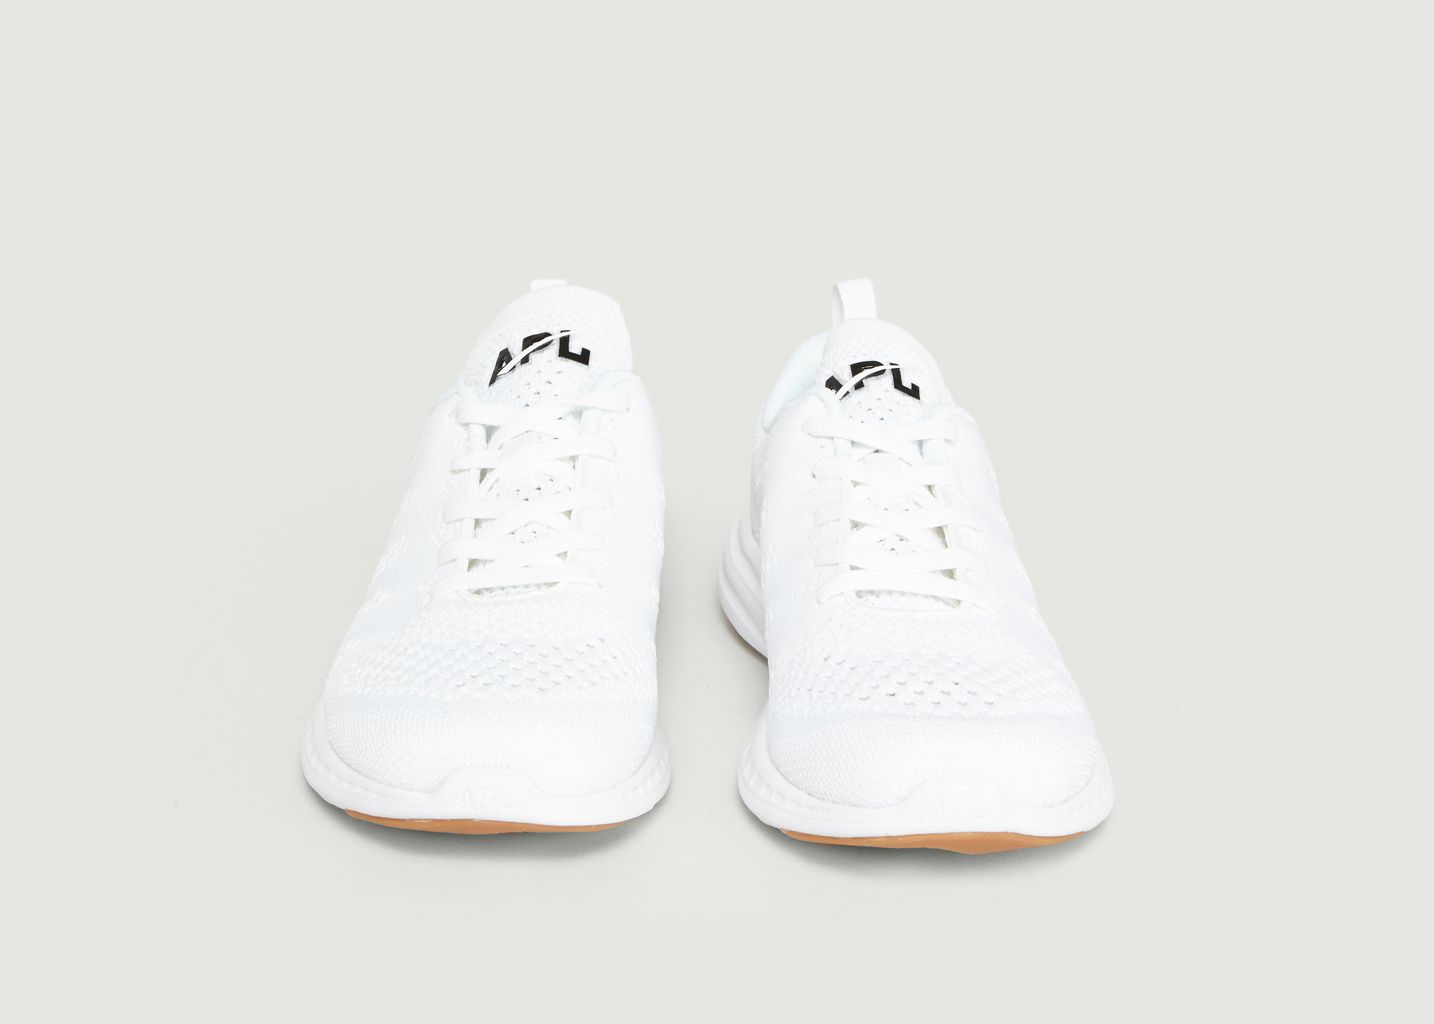 Sneakers Tech Loom Pro - Athletic Propulsion Labs